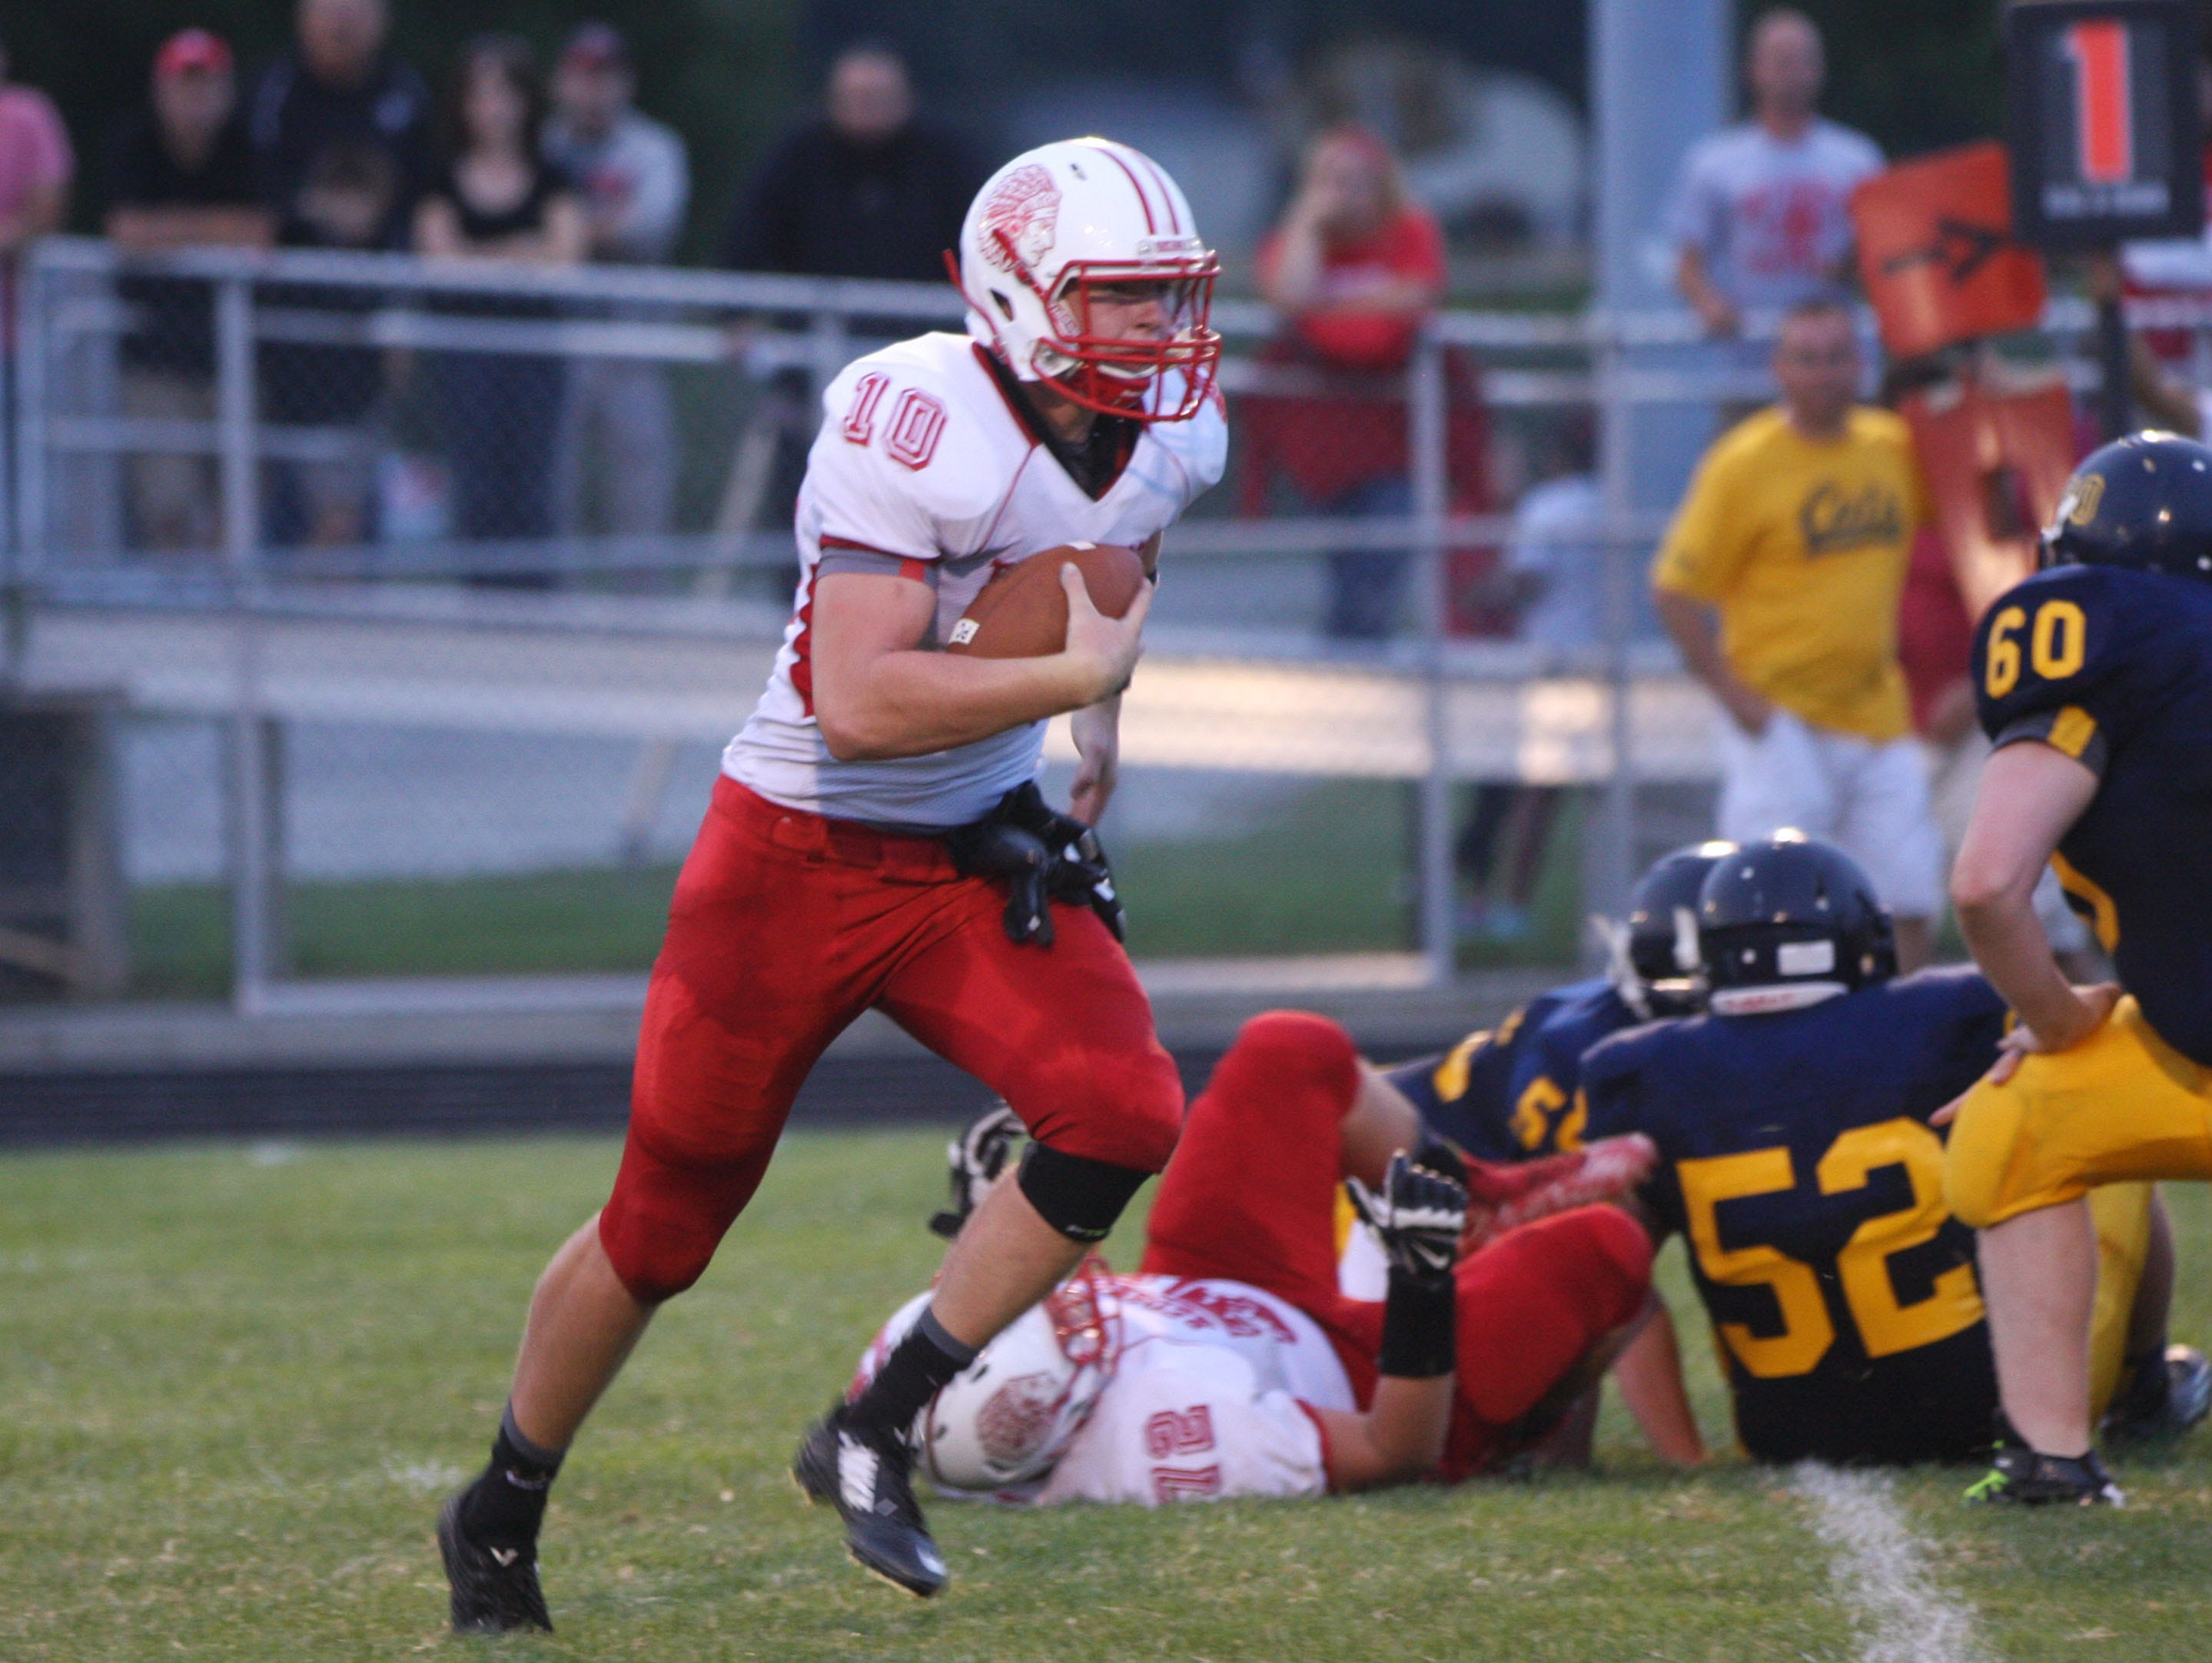 Port Clinton's Joey Brenner rushes for yardage against the Woodmore defense.